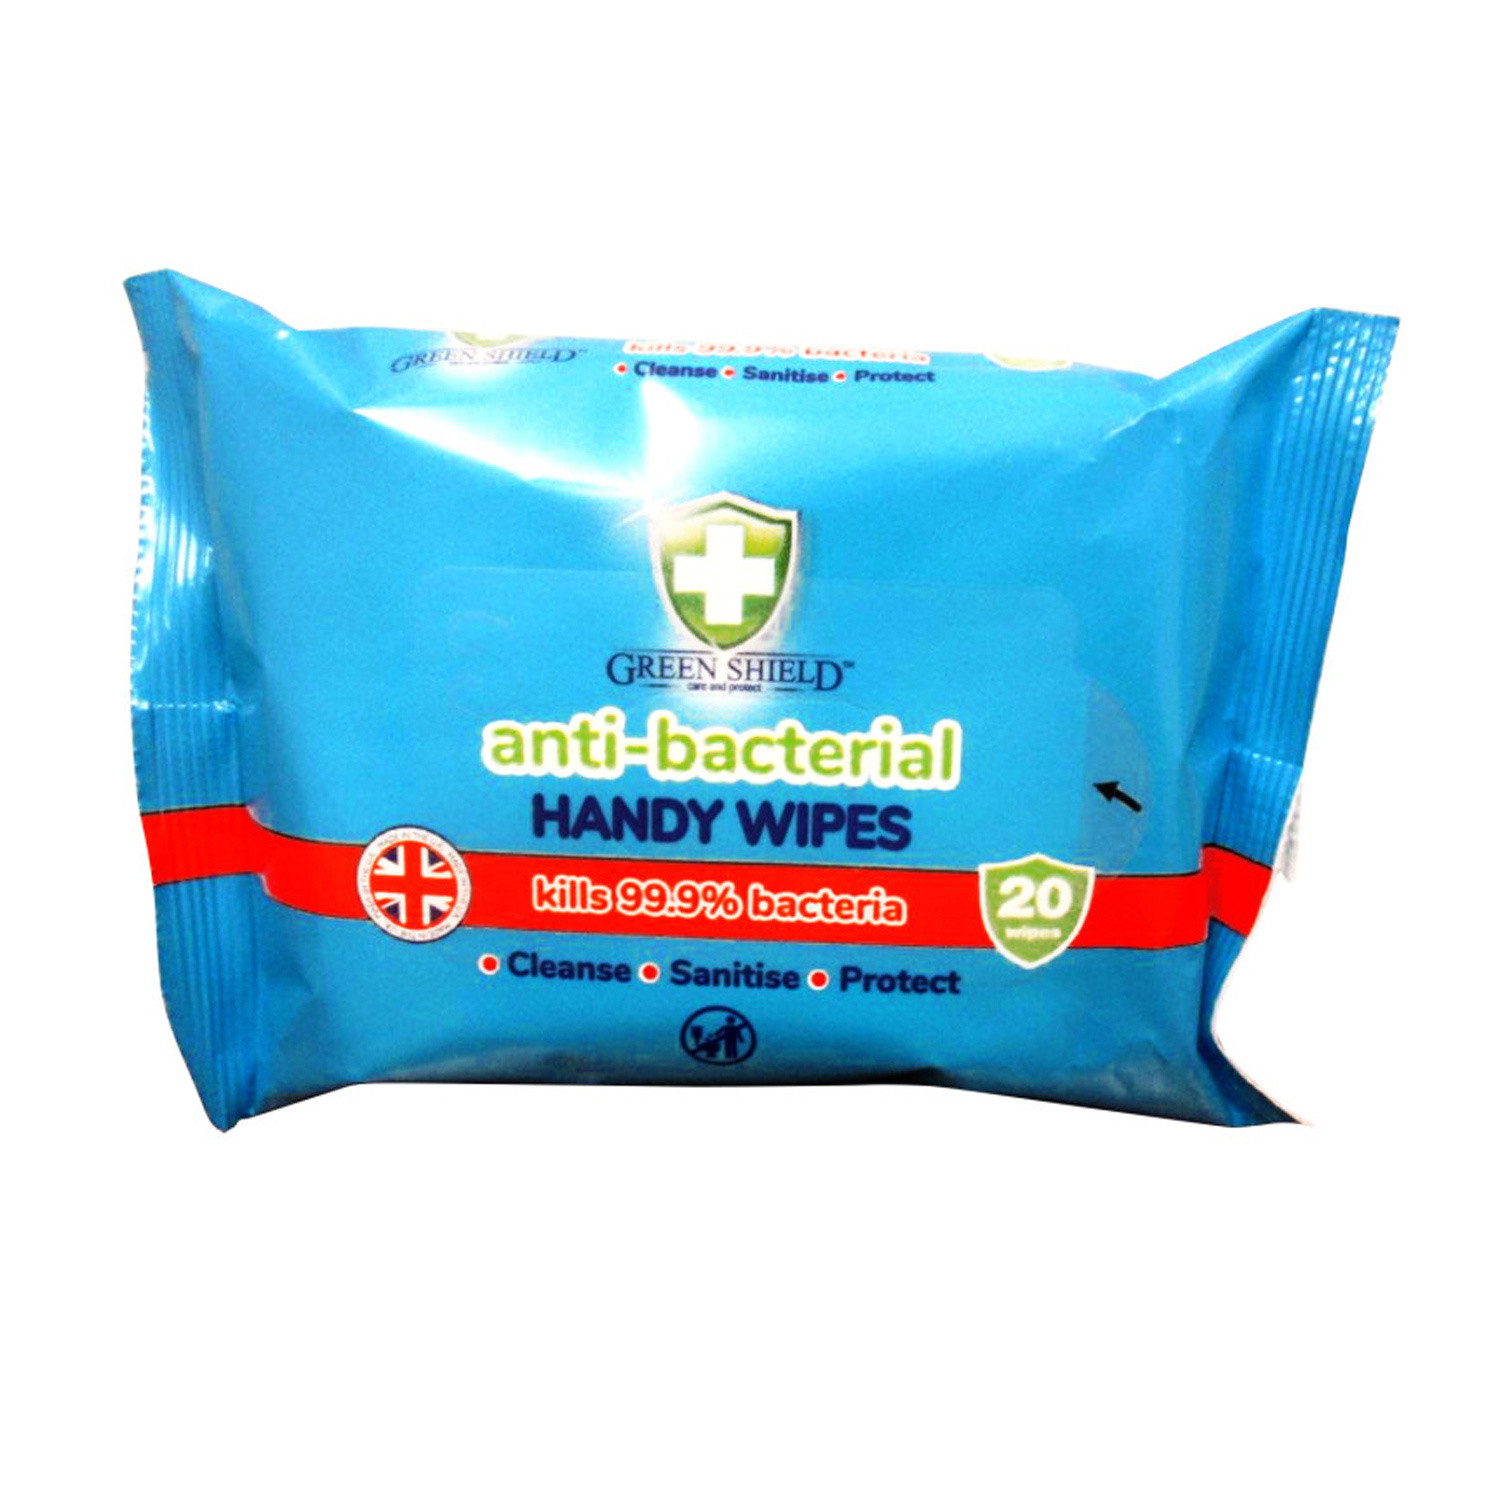 Green Shield Anti Bacterial Handy Wipes